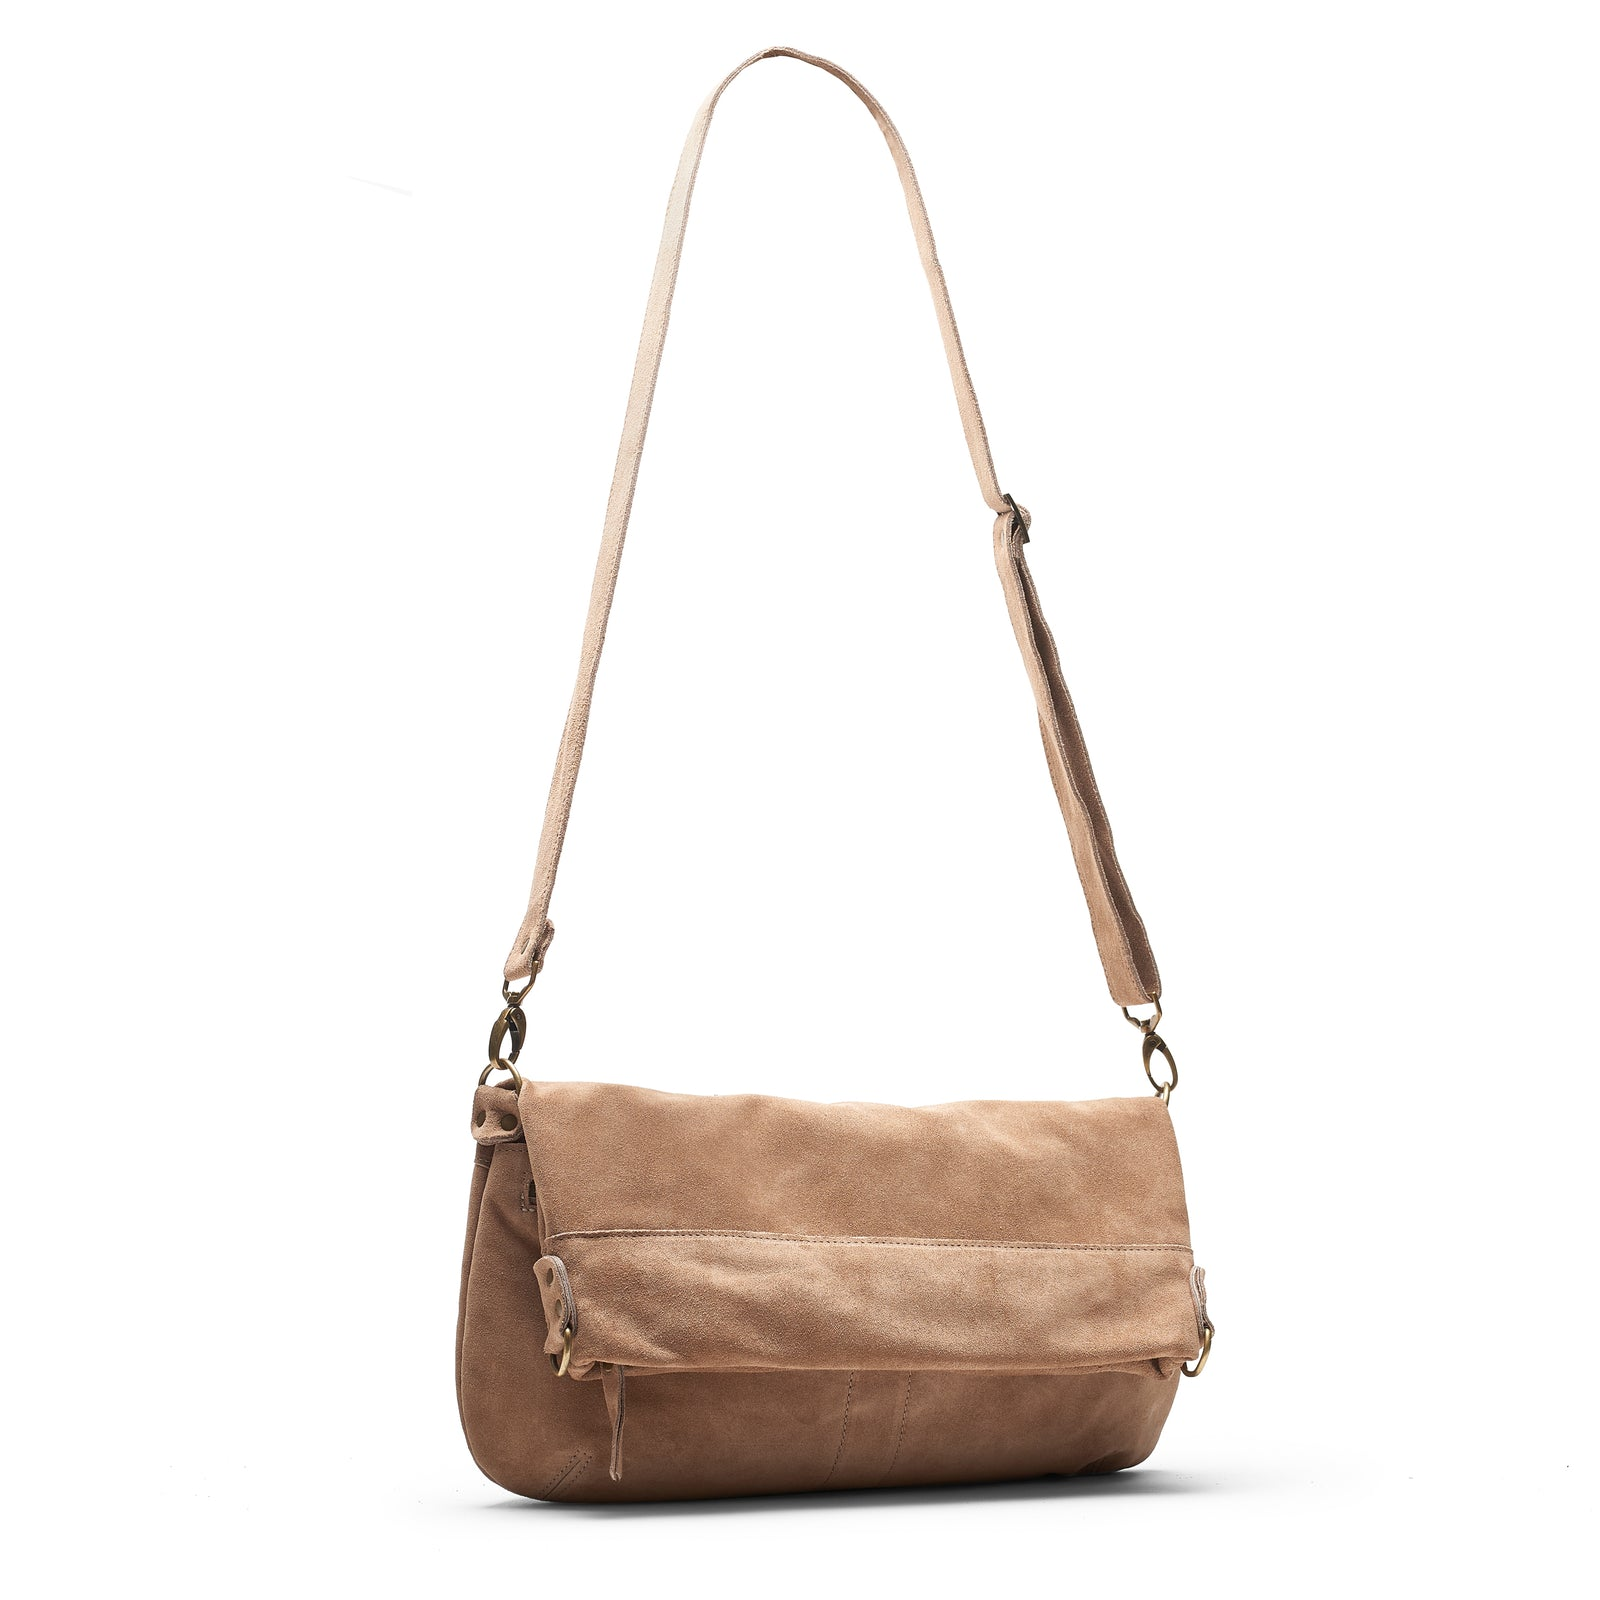 Lauren Crossbody - Fawn - Brynn Capella, Large Crossbody